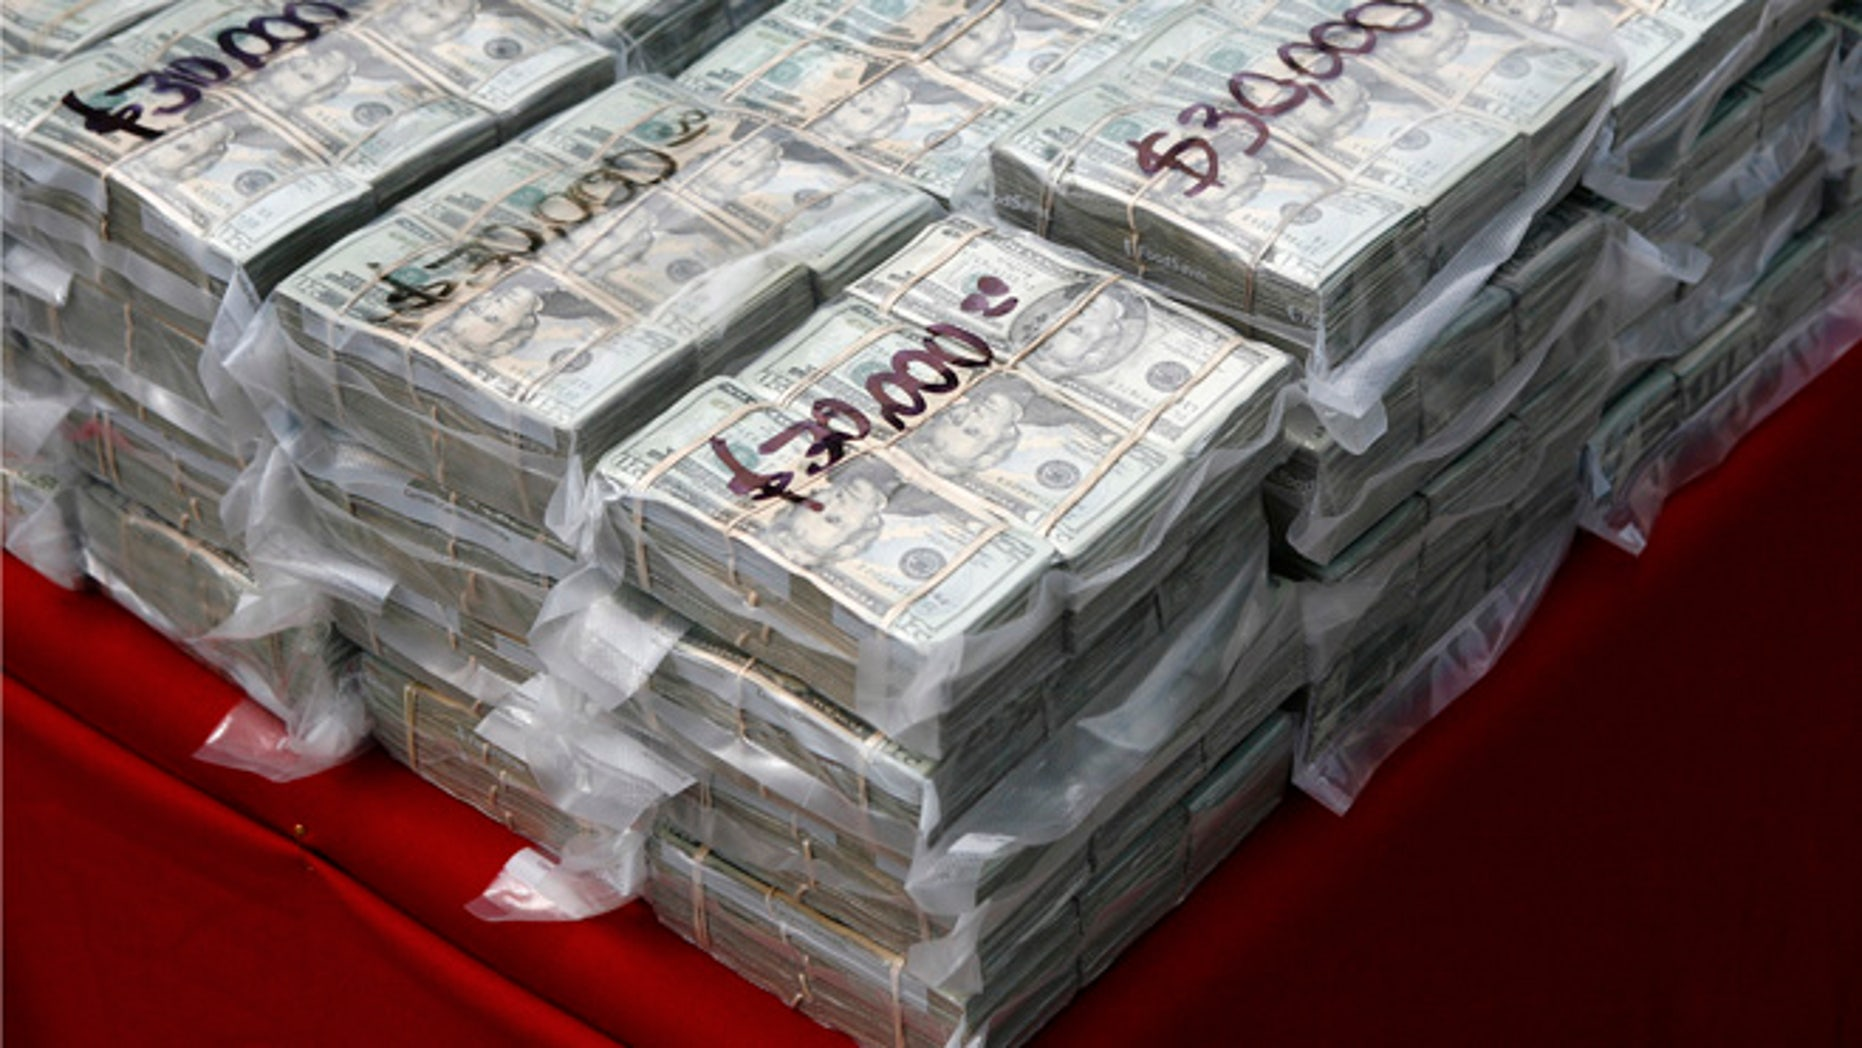 FILE: Packages of money seized during a drug sting.